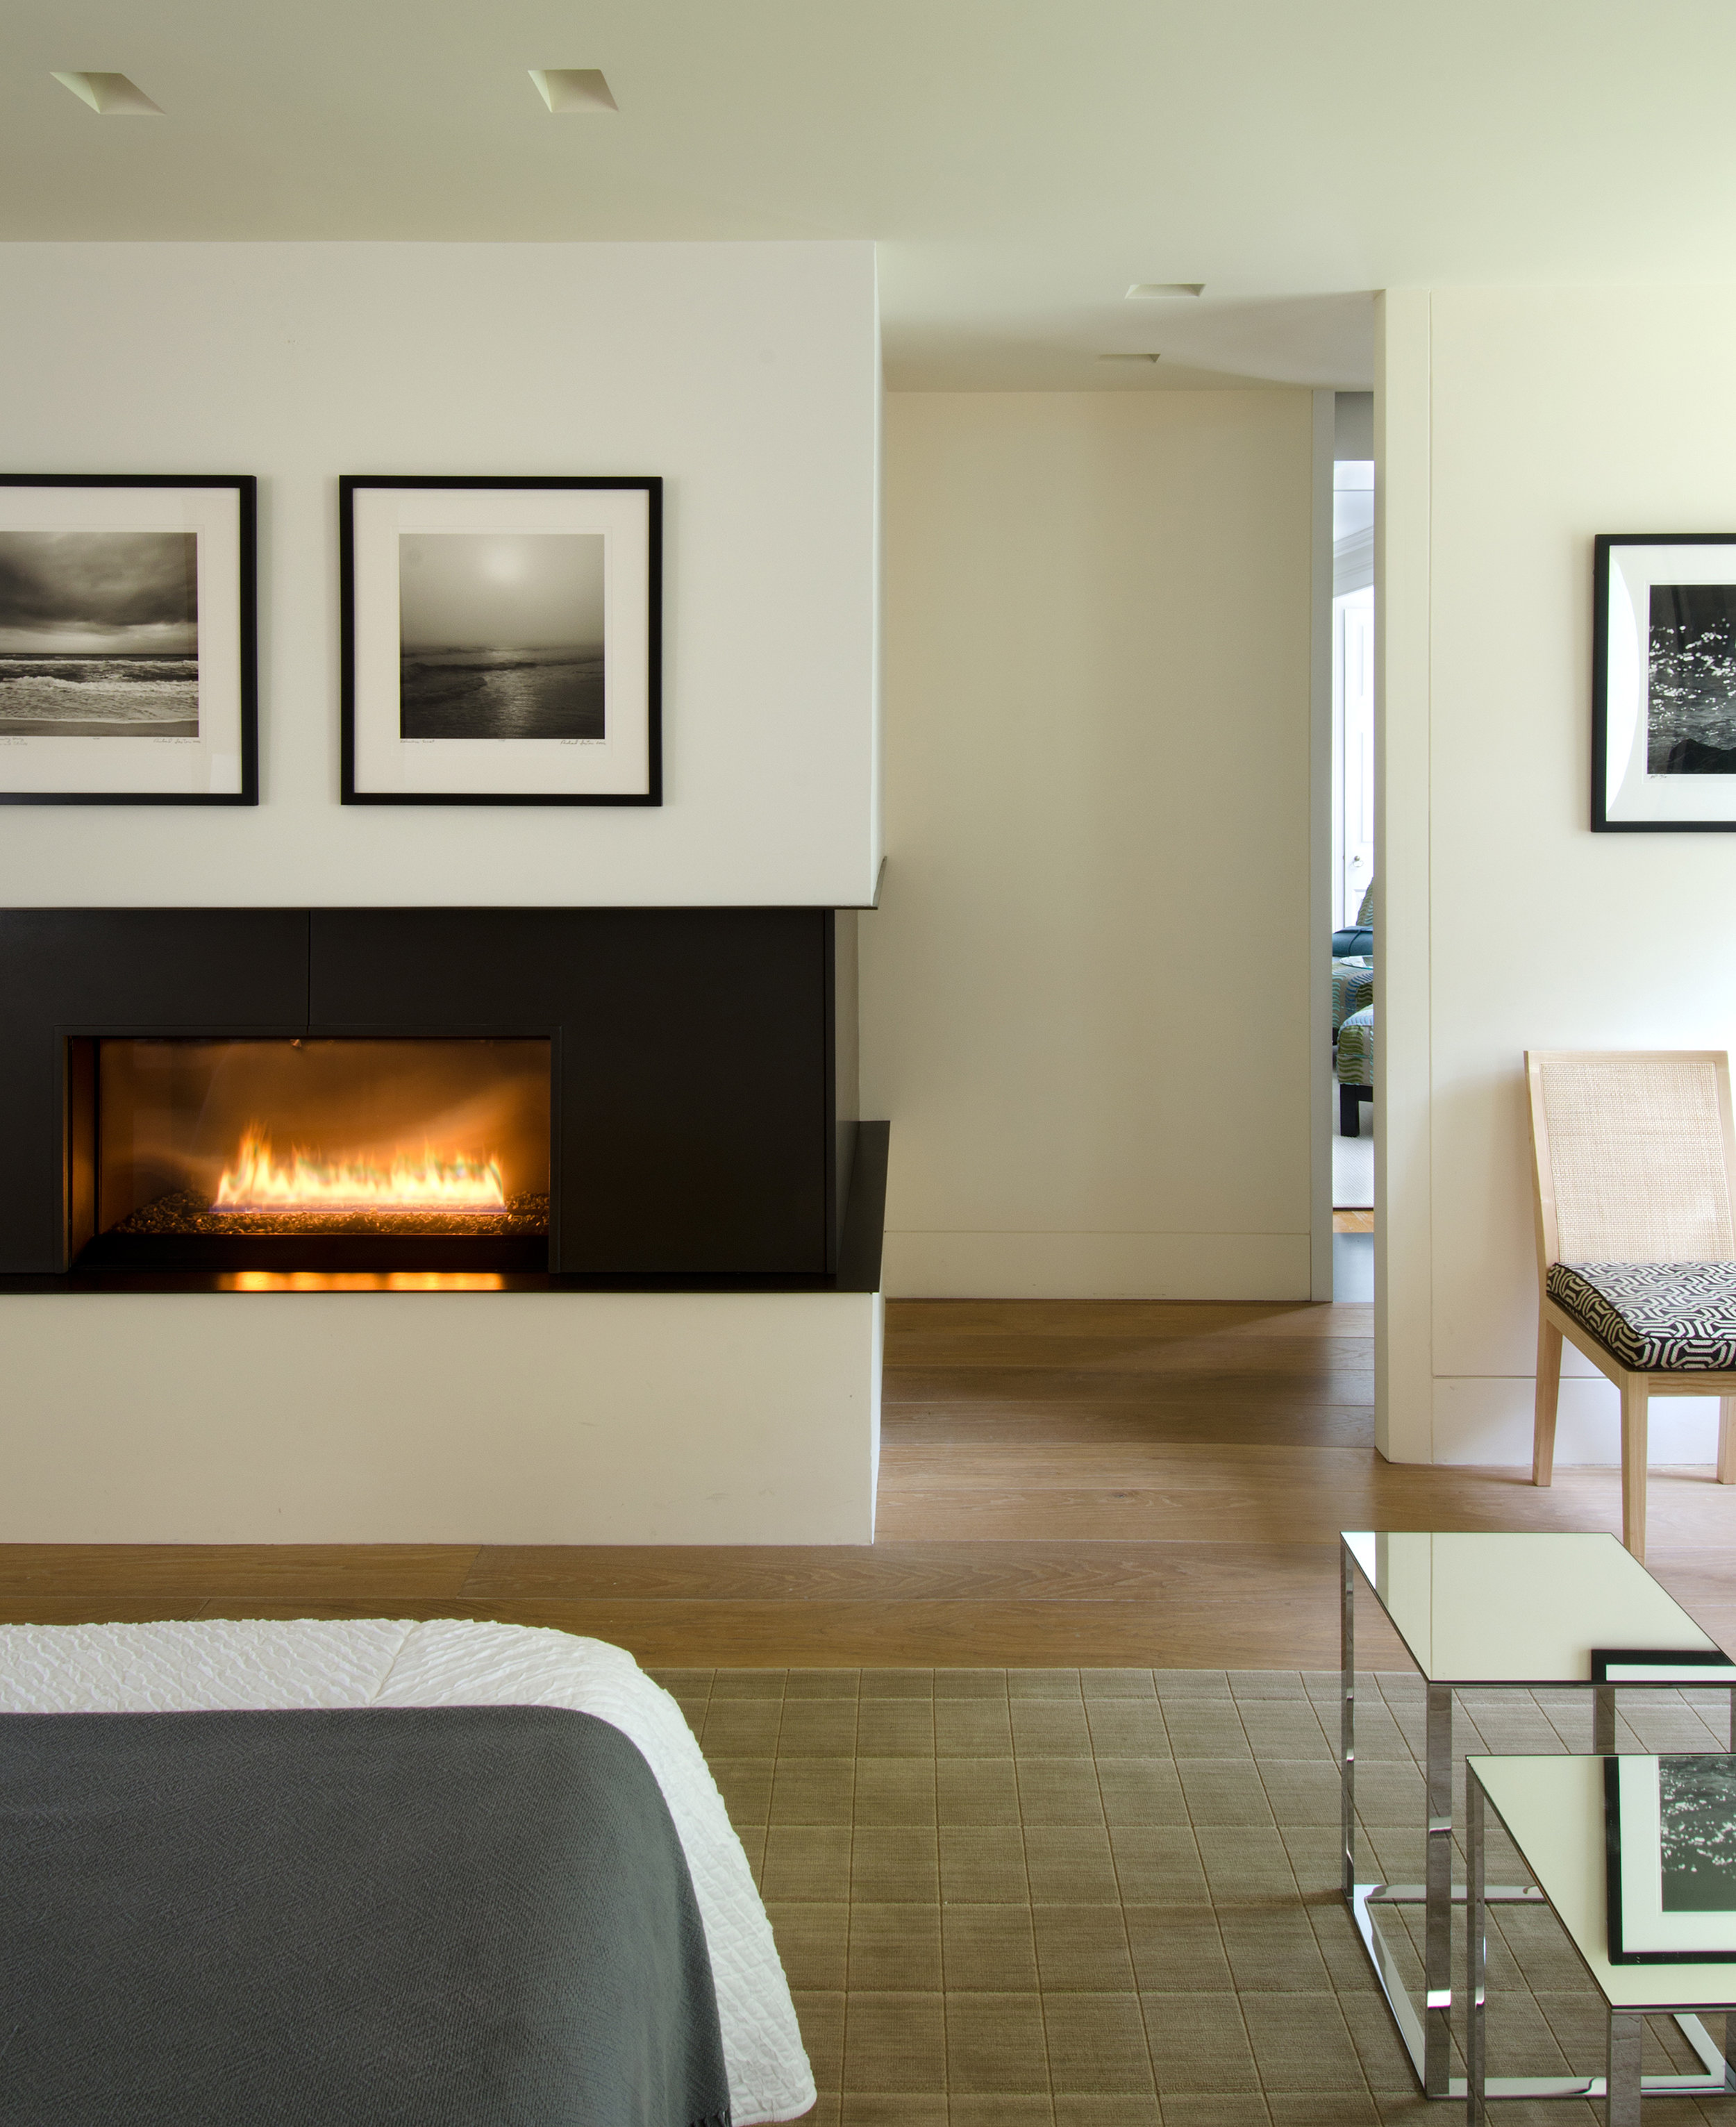 01-Master  Suite Renovation_fireplace.jpg